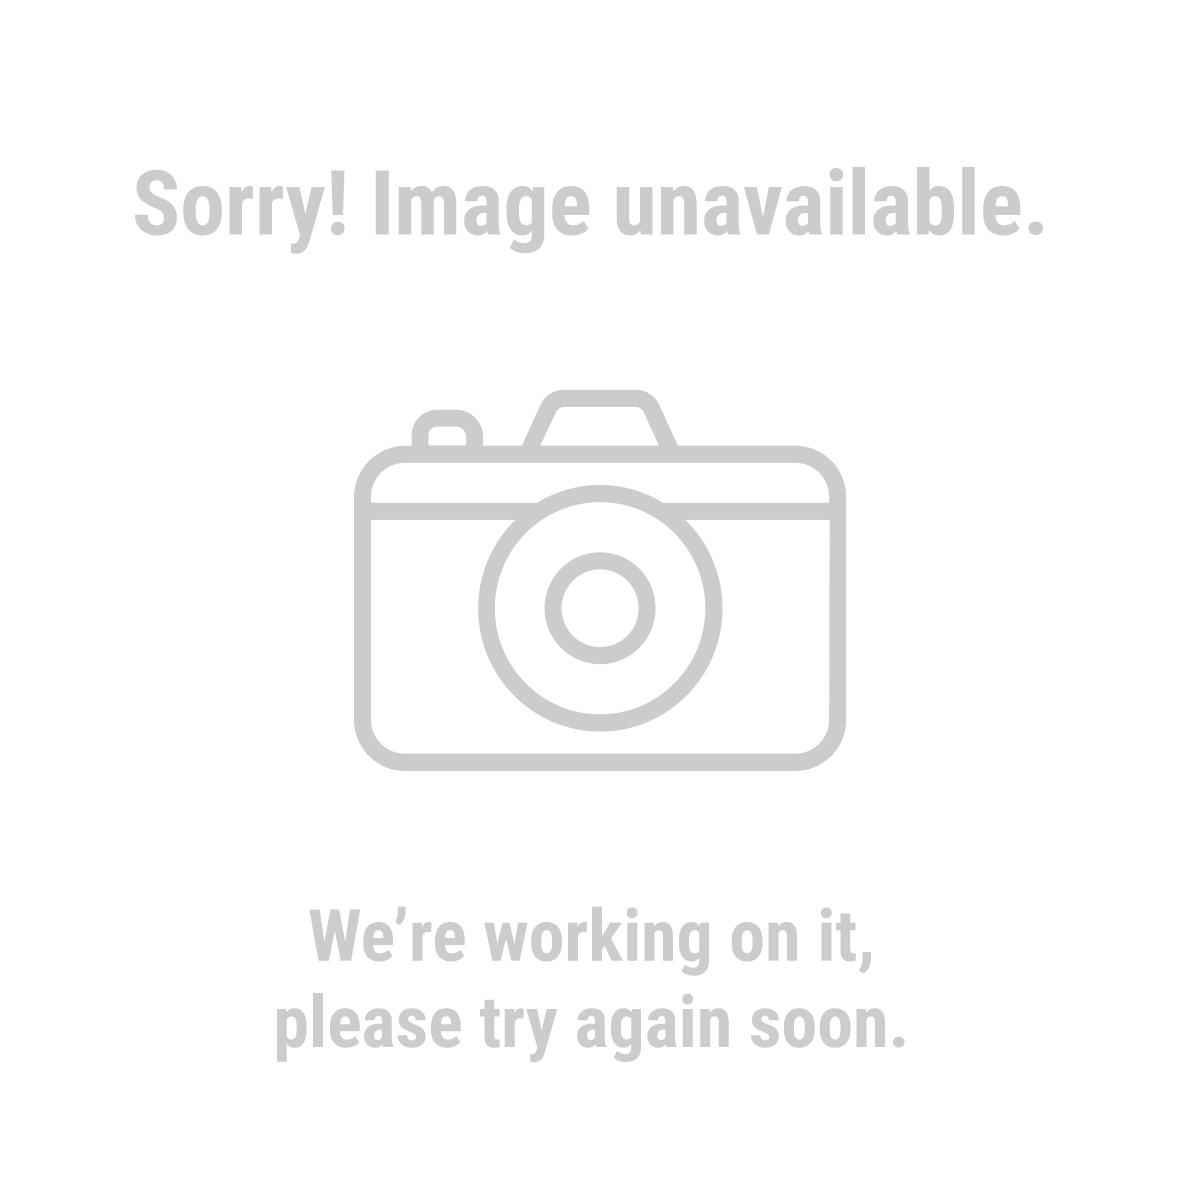 "Pittsburgh® 67995 64 Piece 1/4"", 3/8"" and 1/2"" Socket Set"